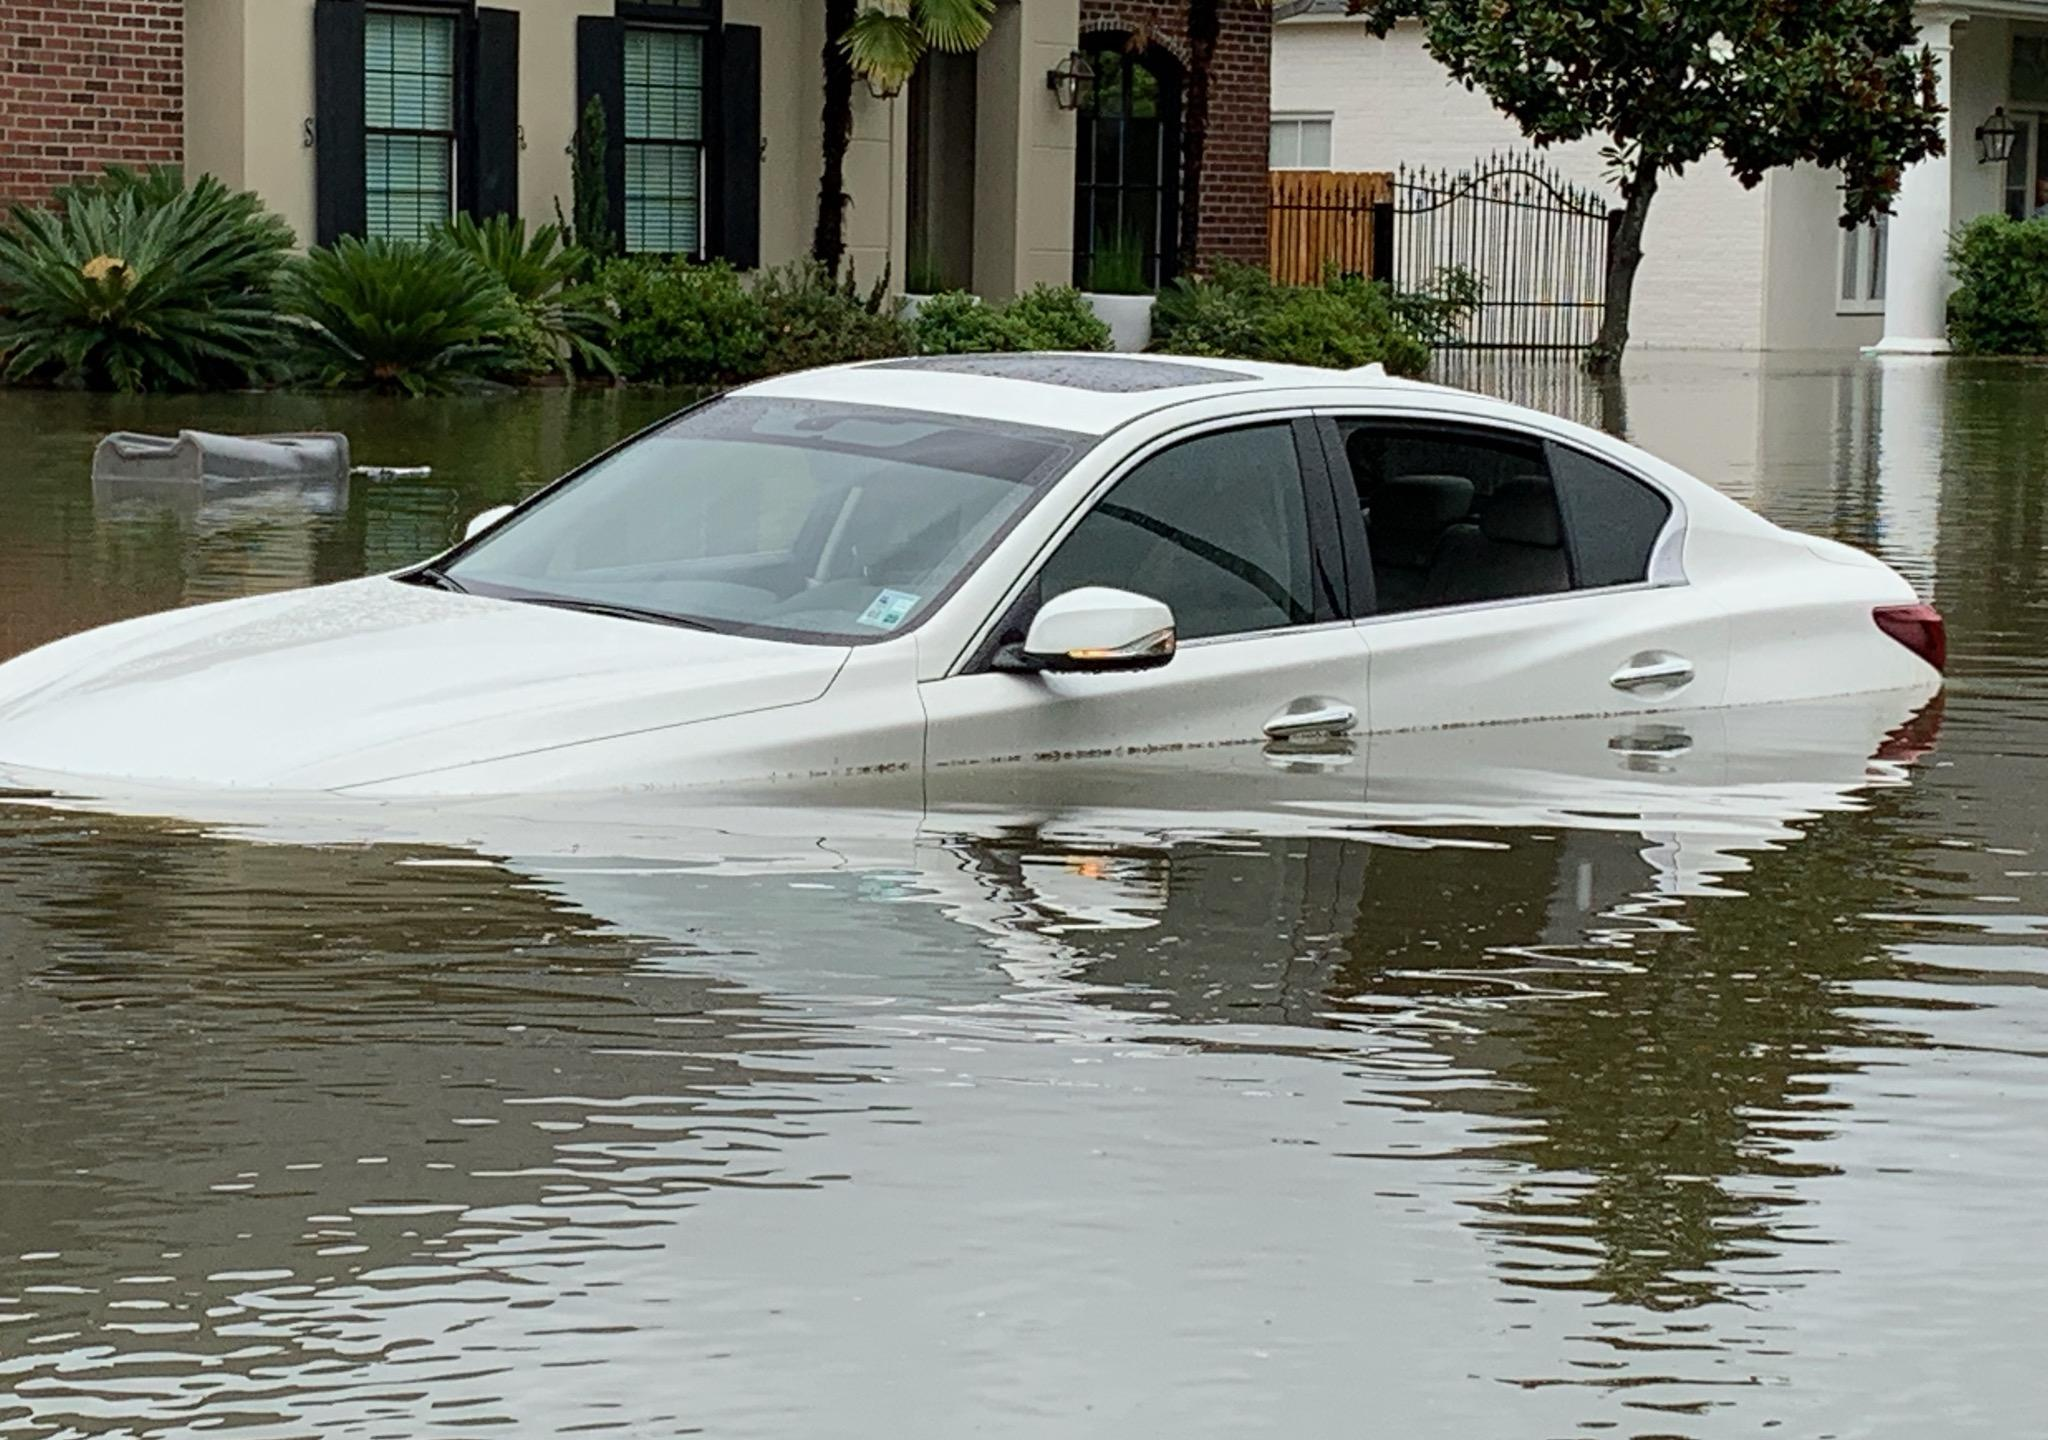 Widespread flooding in Baton Rouge